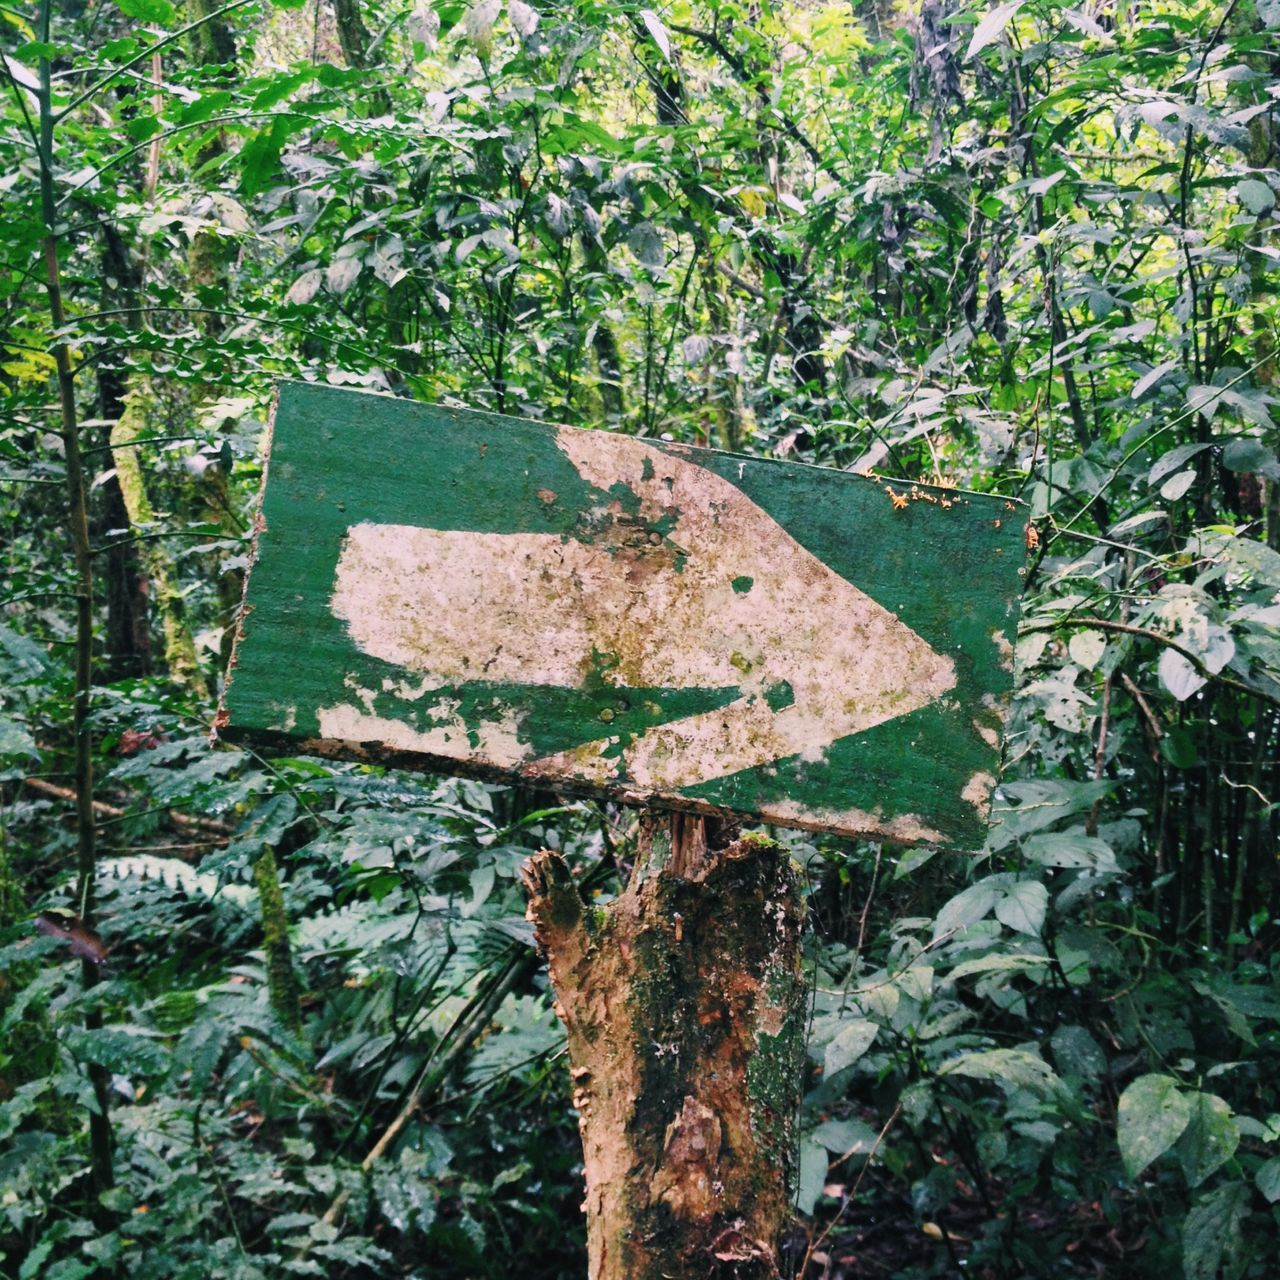 Follow the Green Sign Adapted To The City Arrow Communication Day Direction Growth Guidance Hiking Nature No People Outdoors Plant Right Road Sign Sign Tree